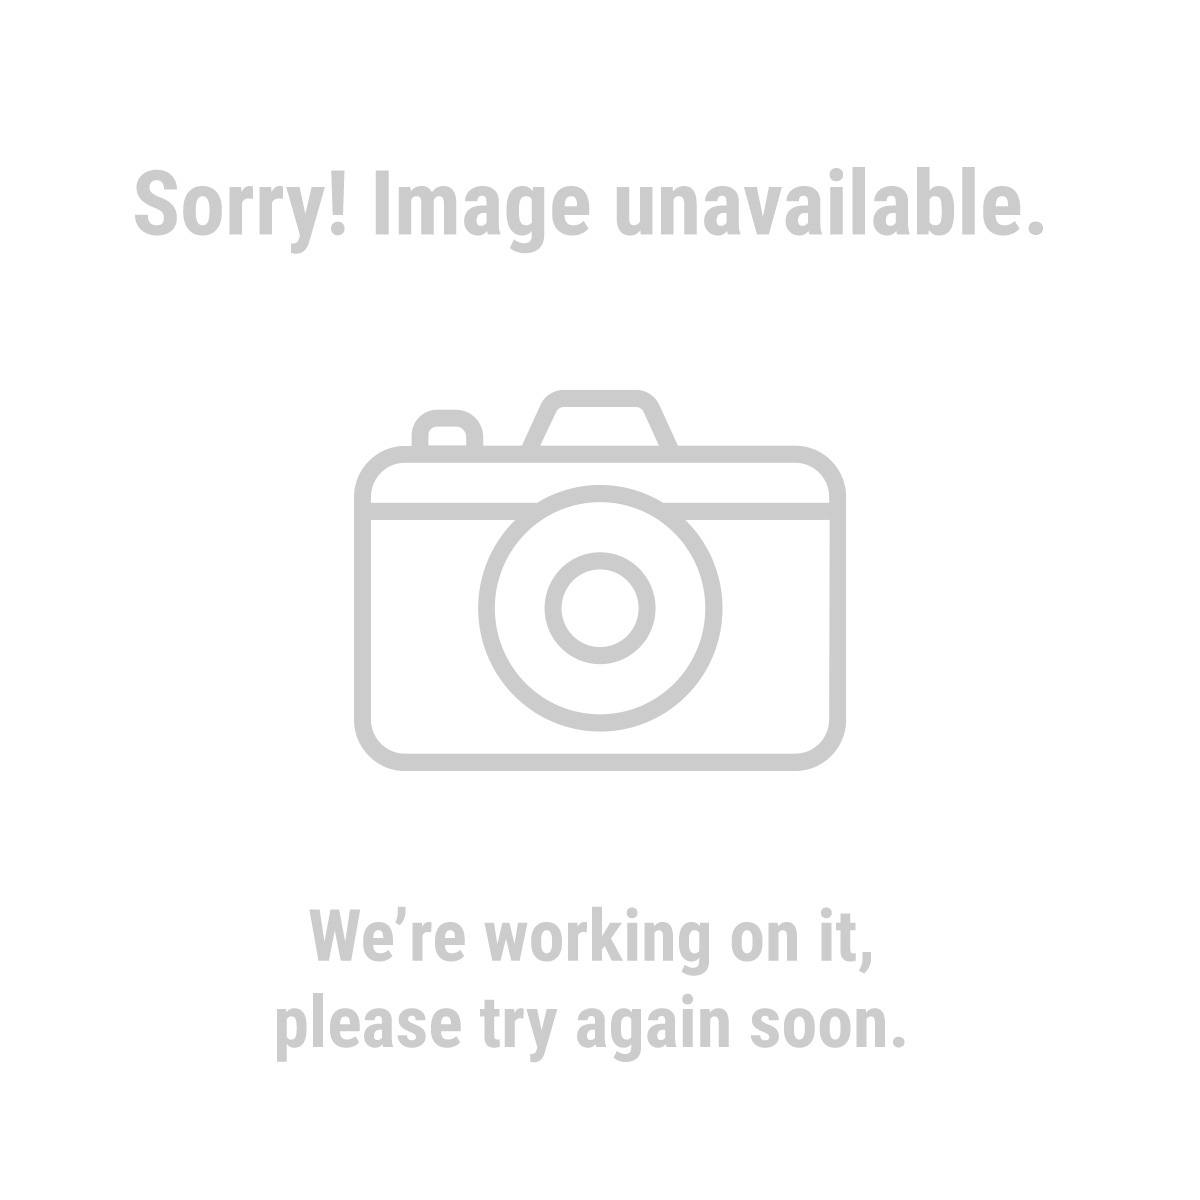 CoverPro 62897 10 ft. x 10 ft. Popup Canopy